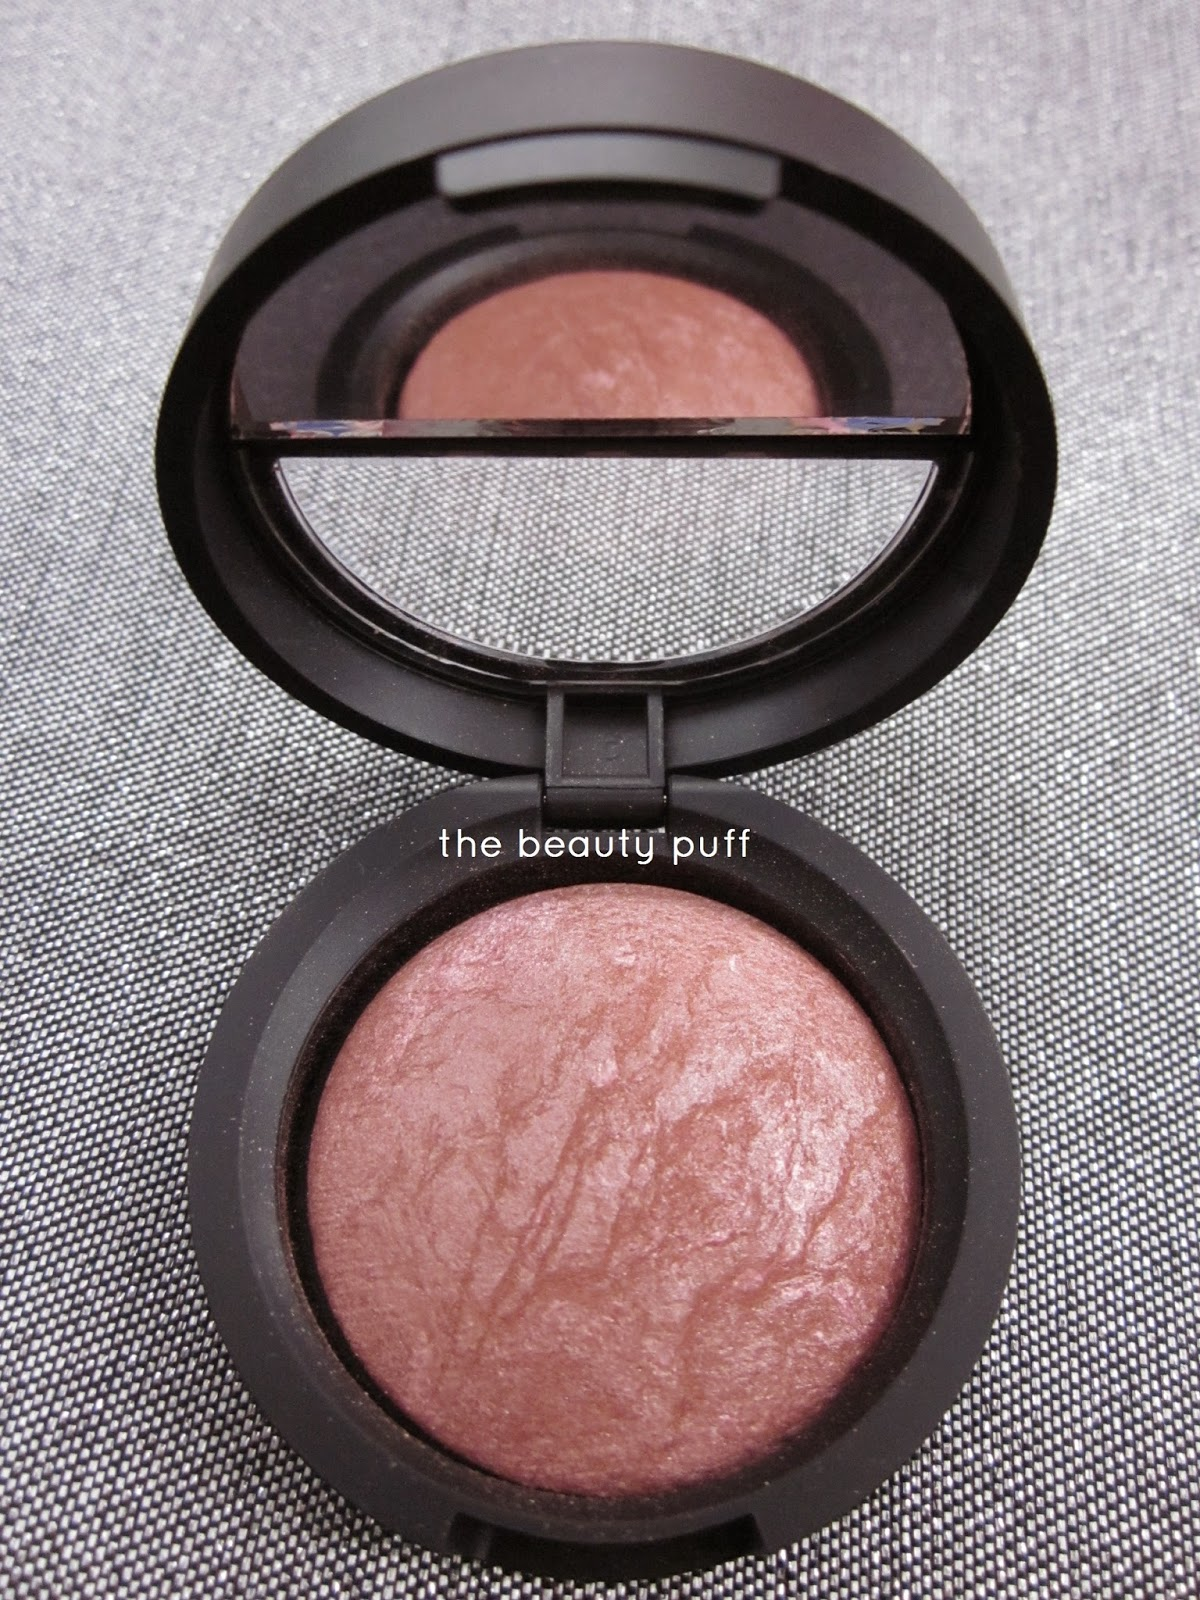 Laura Geller Pink Grapefruit Blush - The Beauty Puff